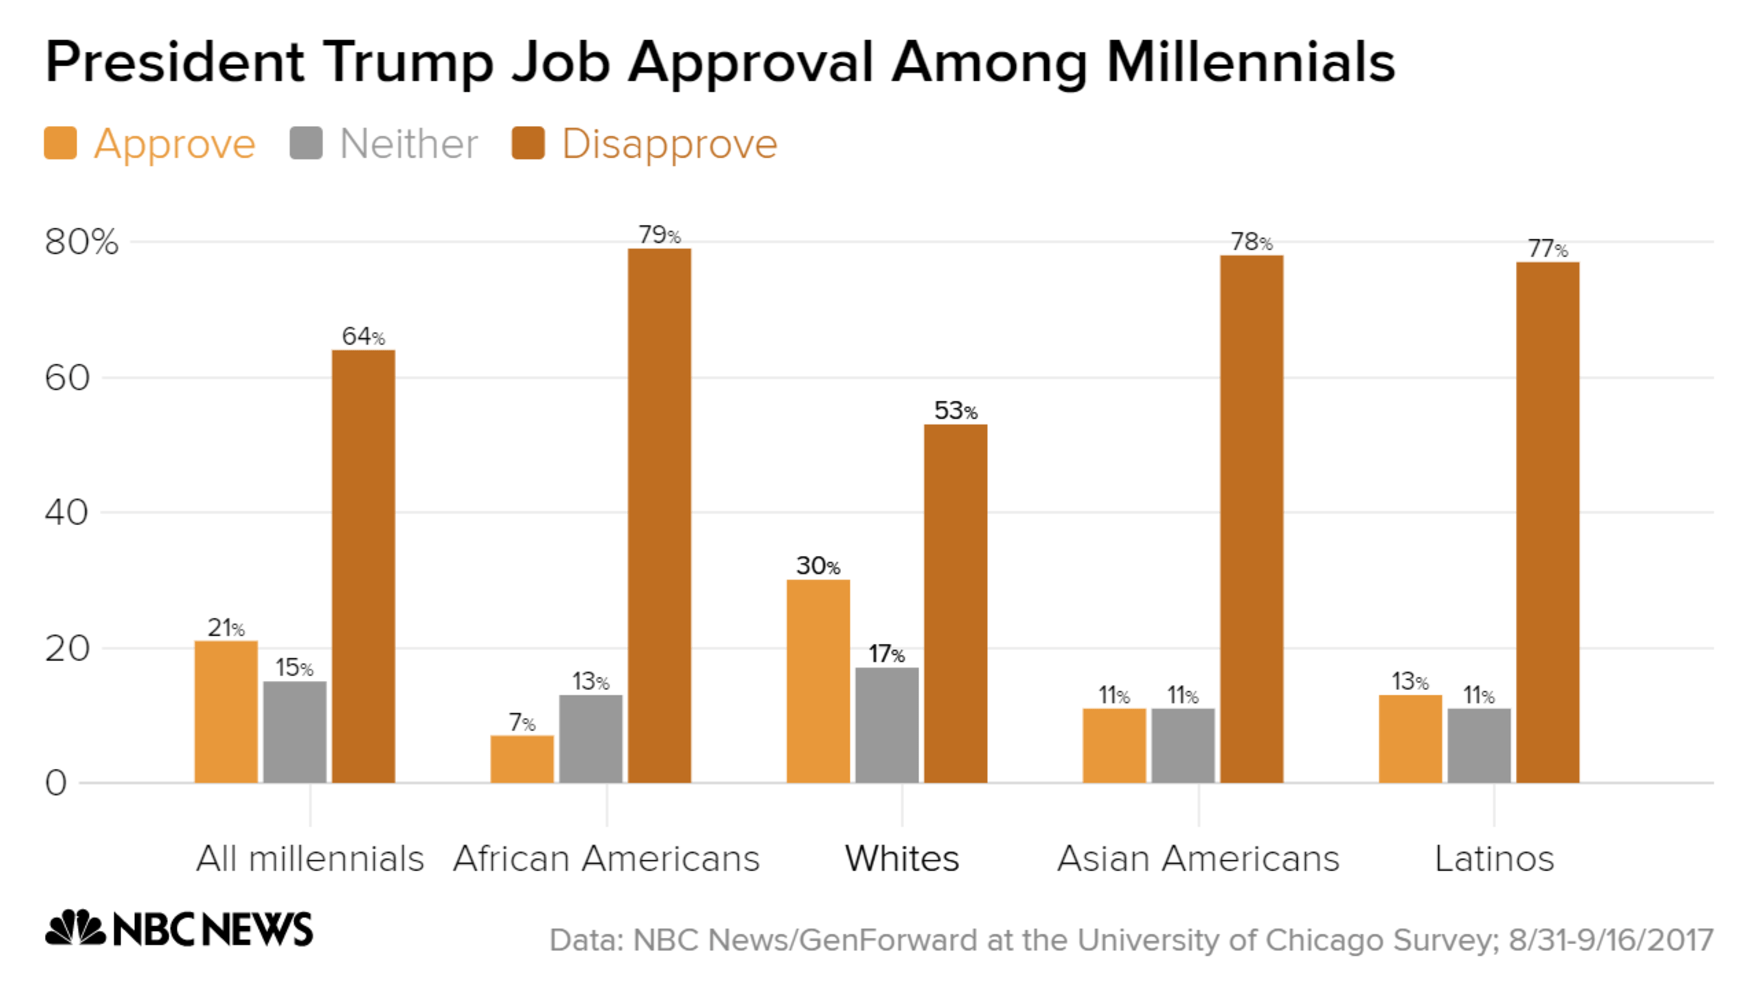 Most millennials disapprove of Trump